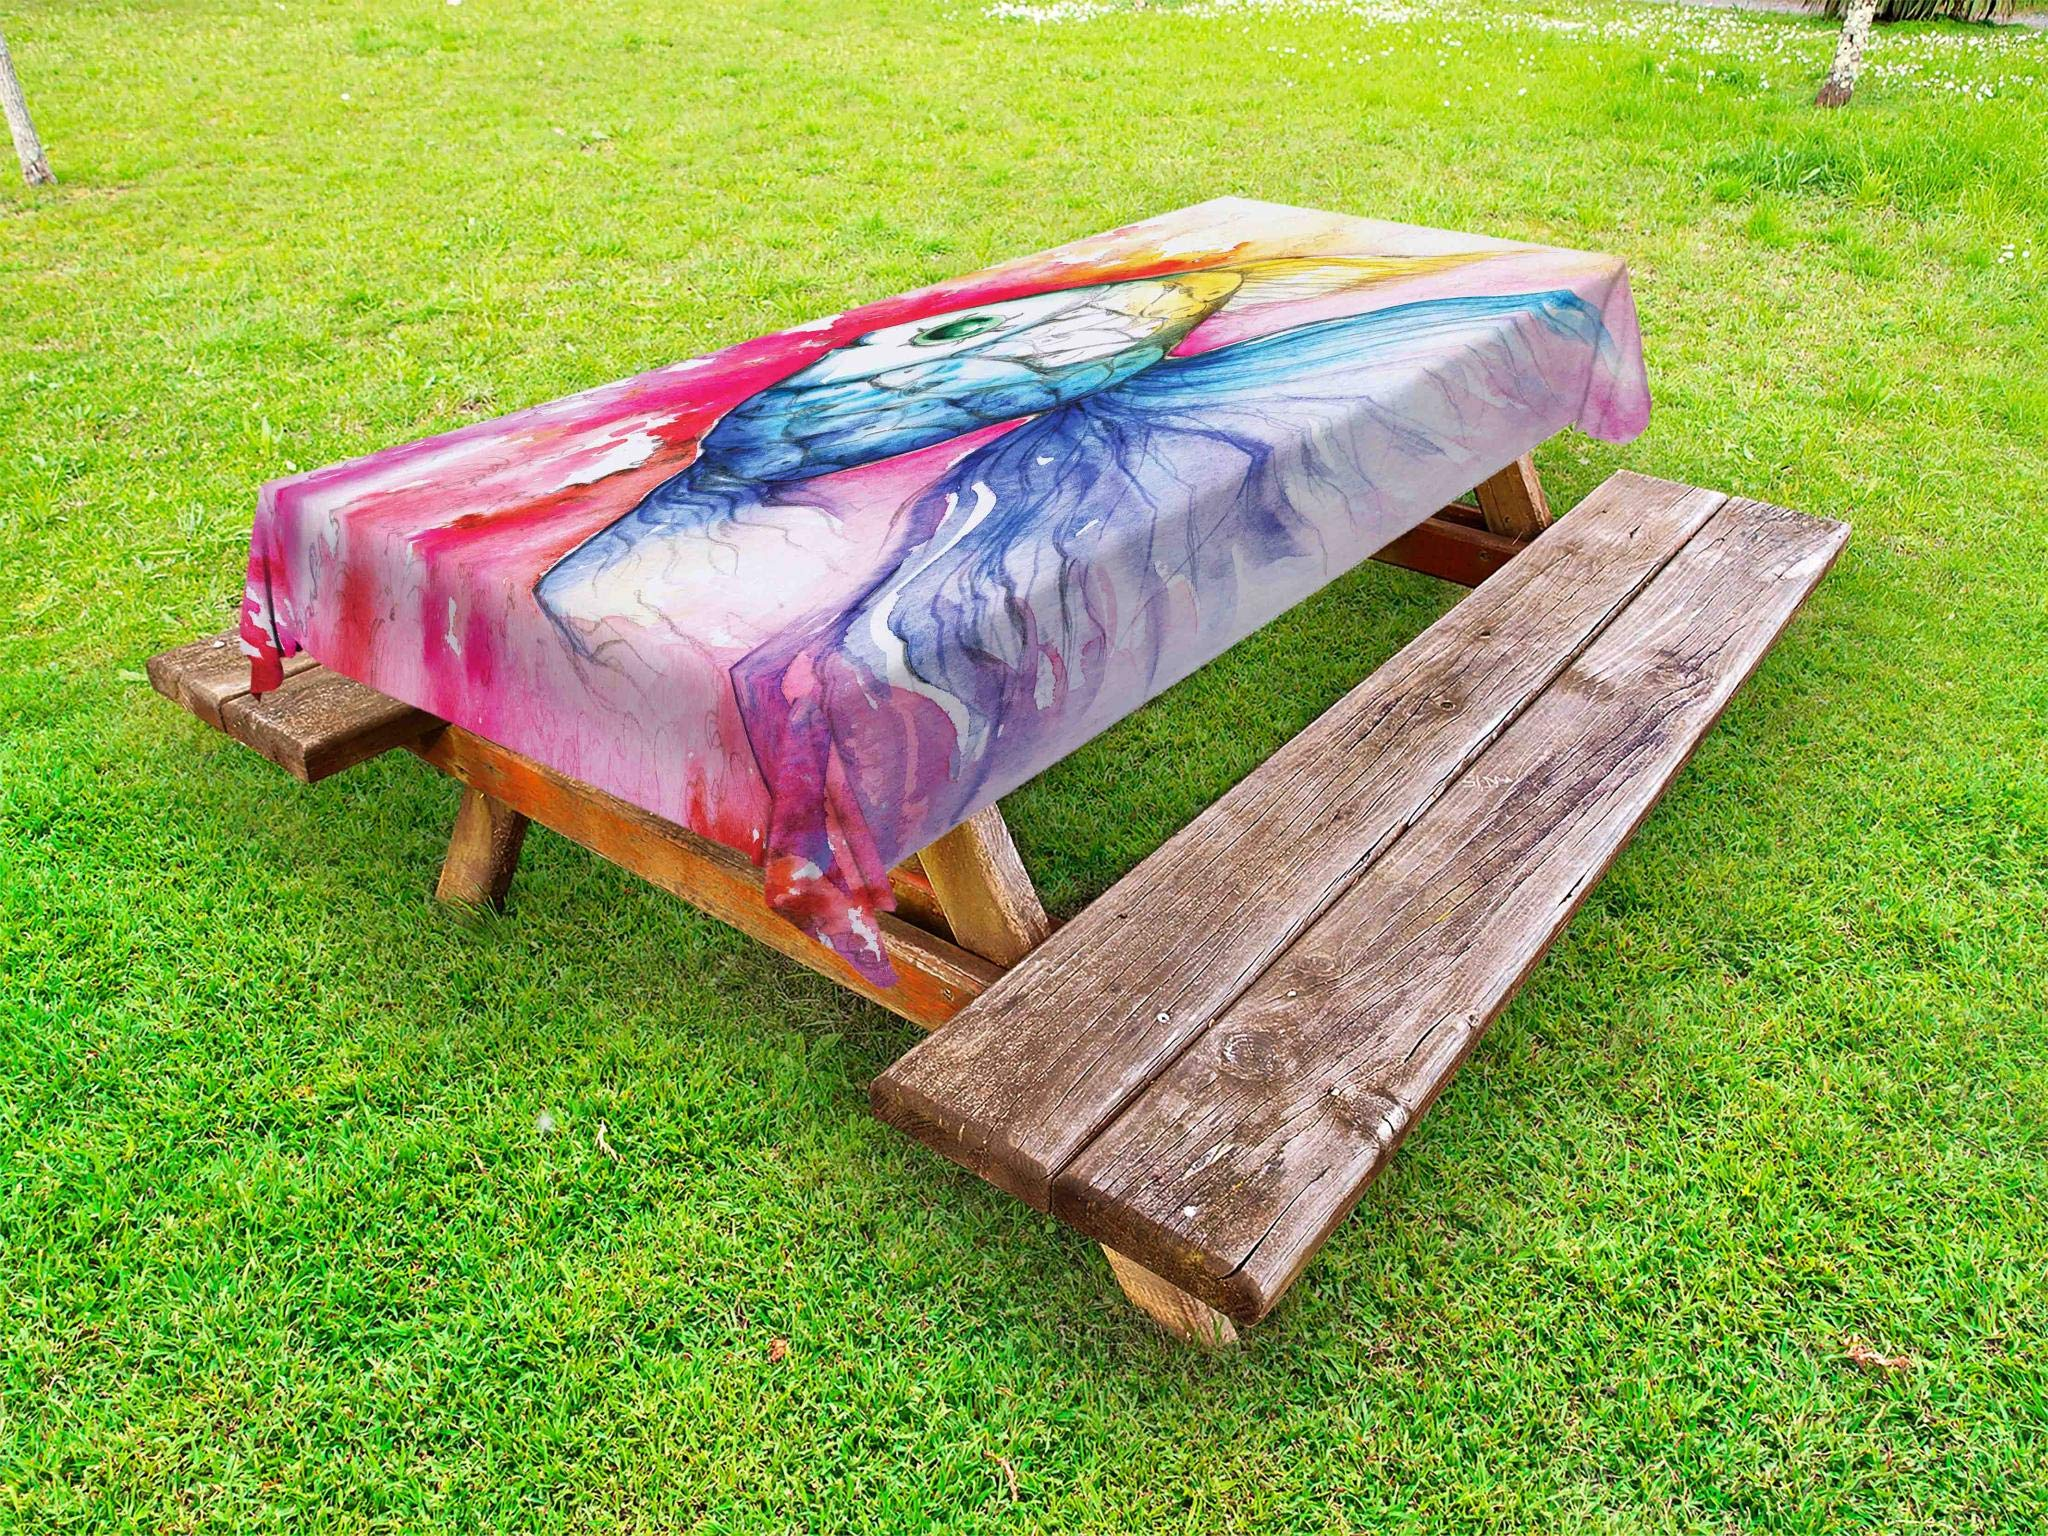 Ambesonne Fish Outdoor Tablecloth, Watercolor Fish Paint with Grunge Vivid Brushstrokes and Splashes Nautical Concept, Decorative Washable Picnic Table Cloth, 58 X 84 Inches, Multicolor